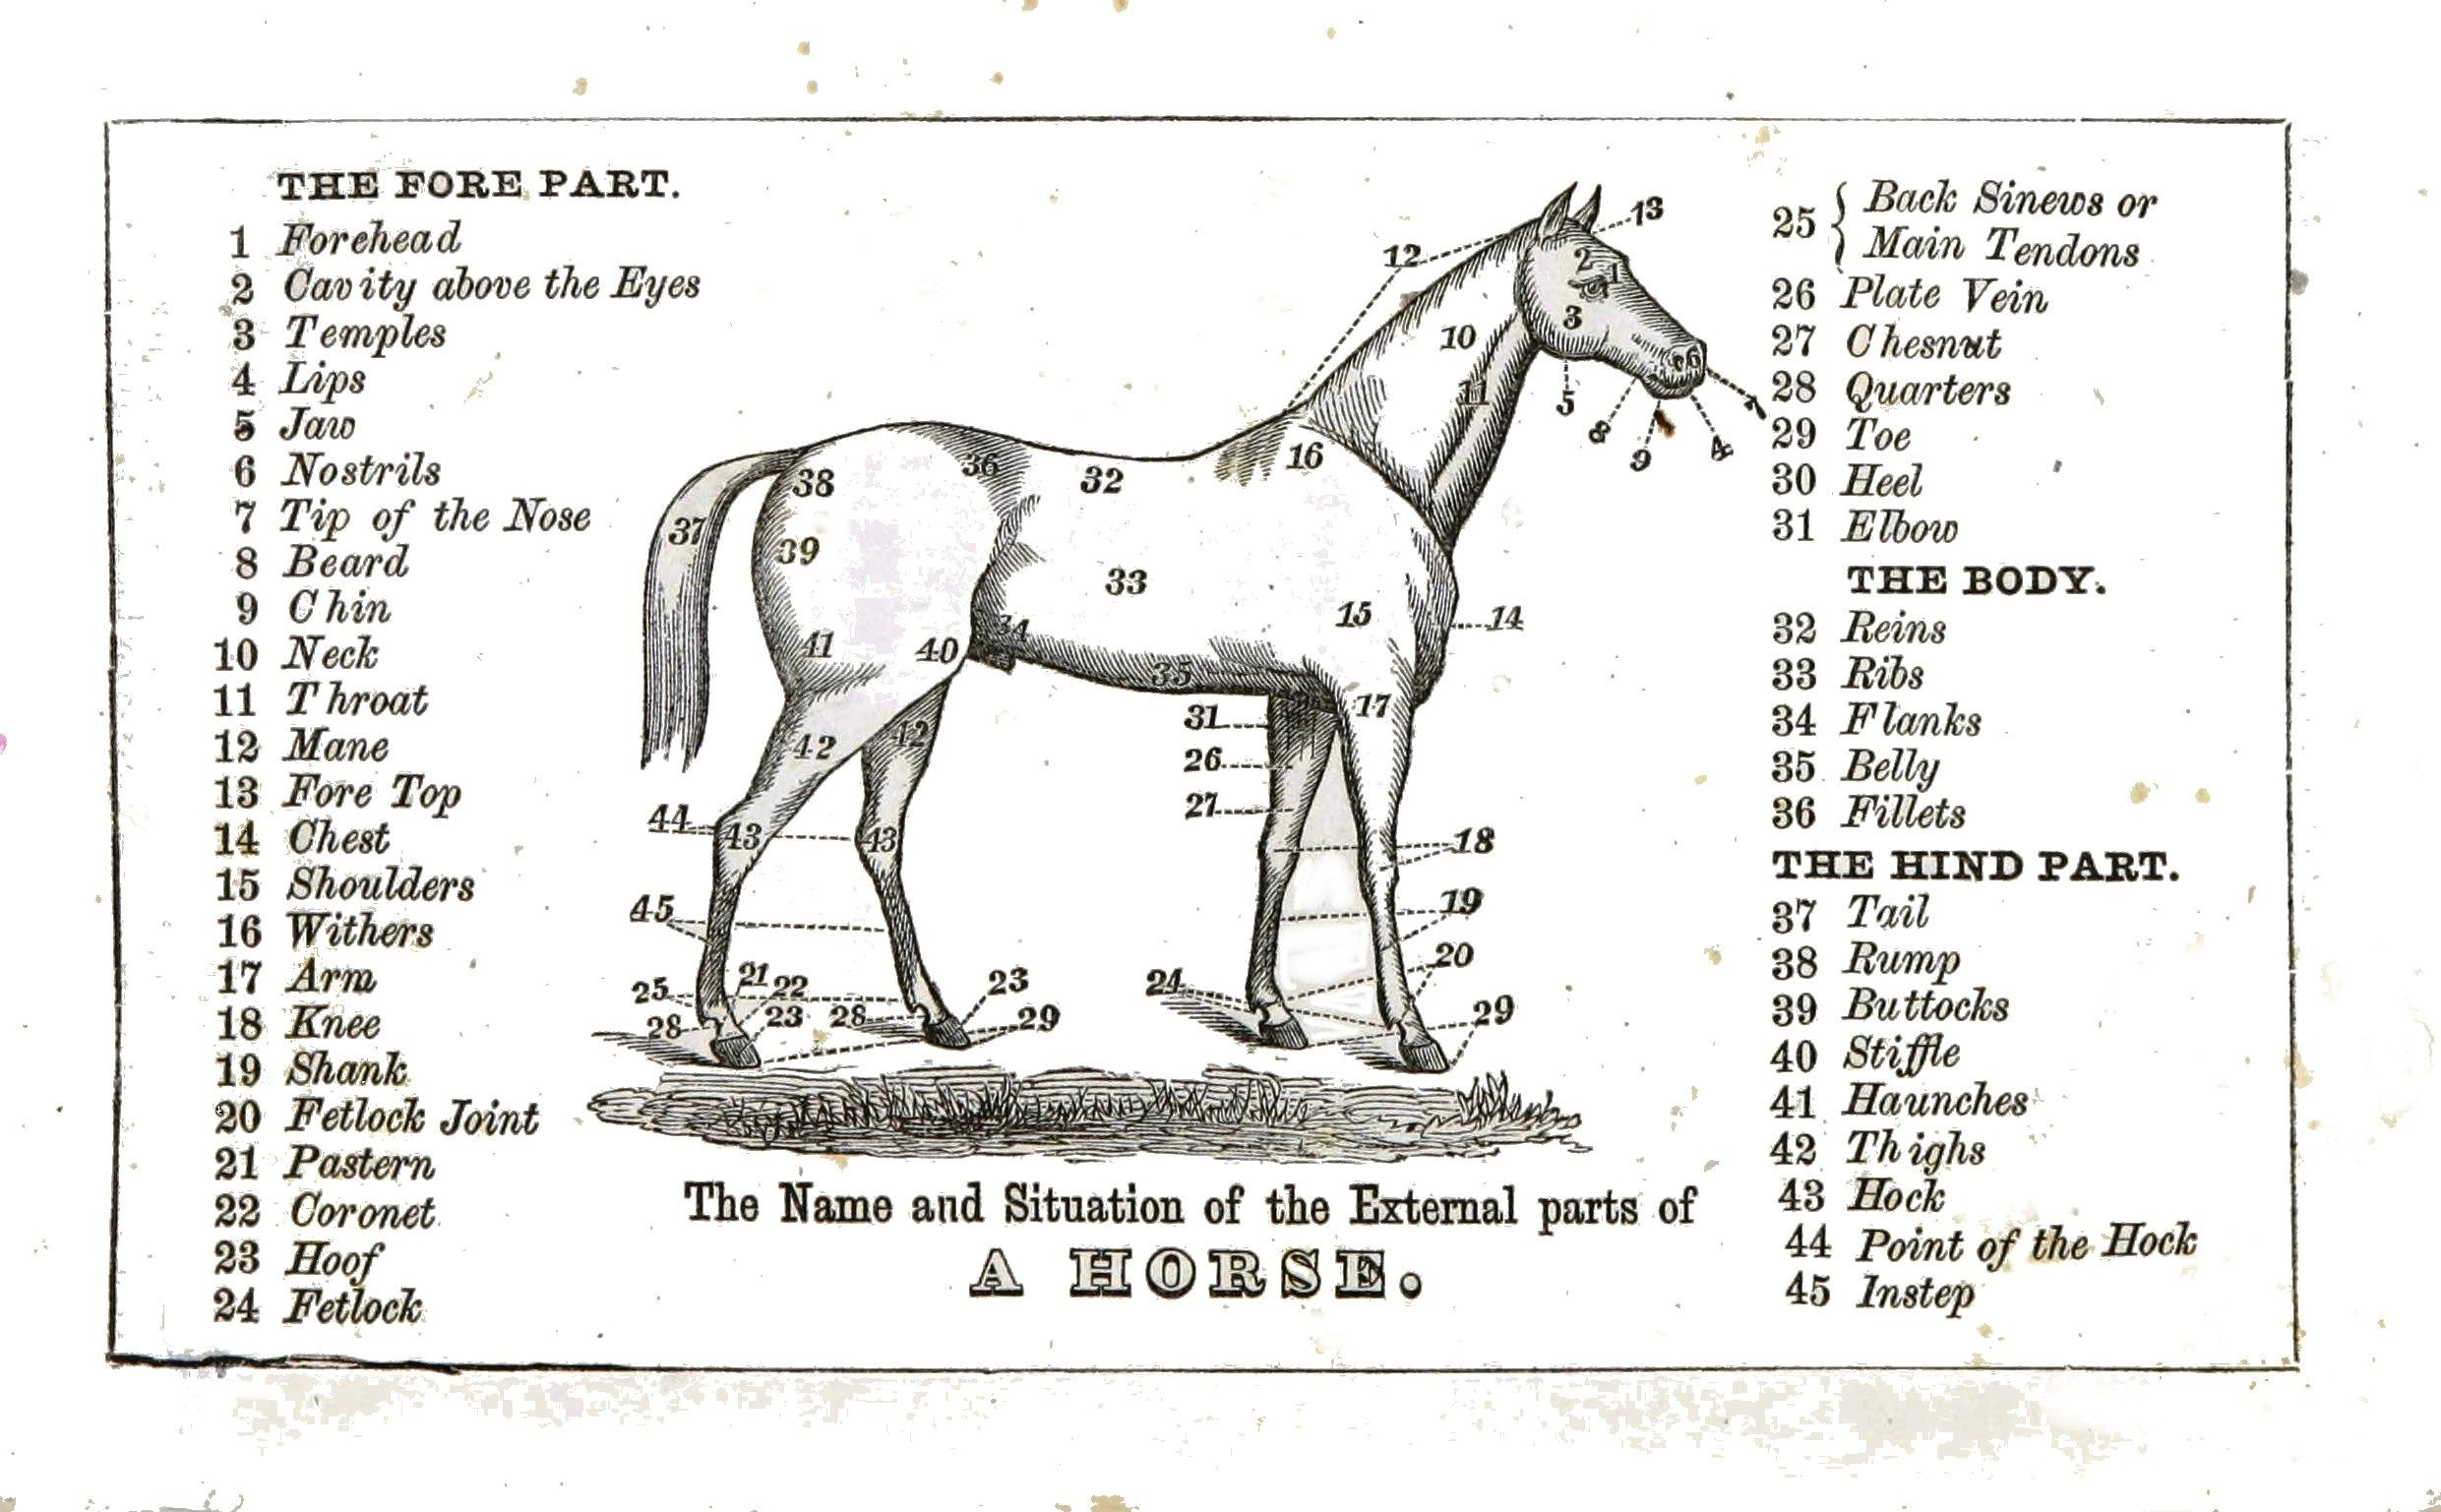 Horse Body Parts Chart